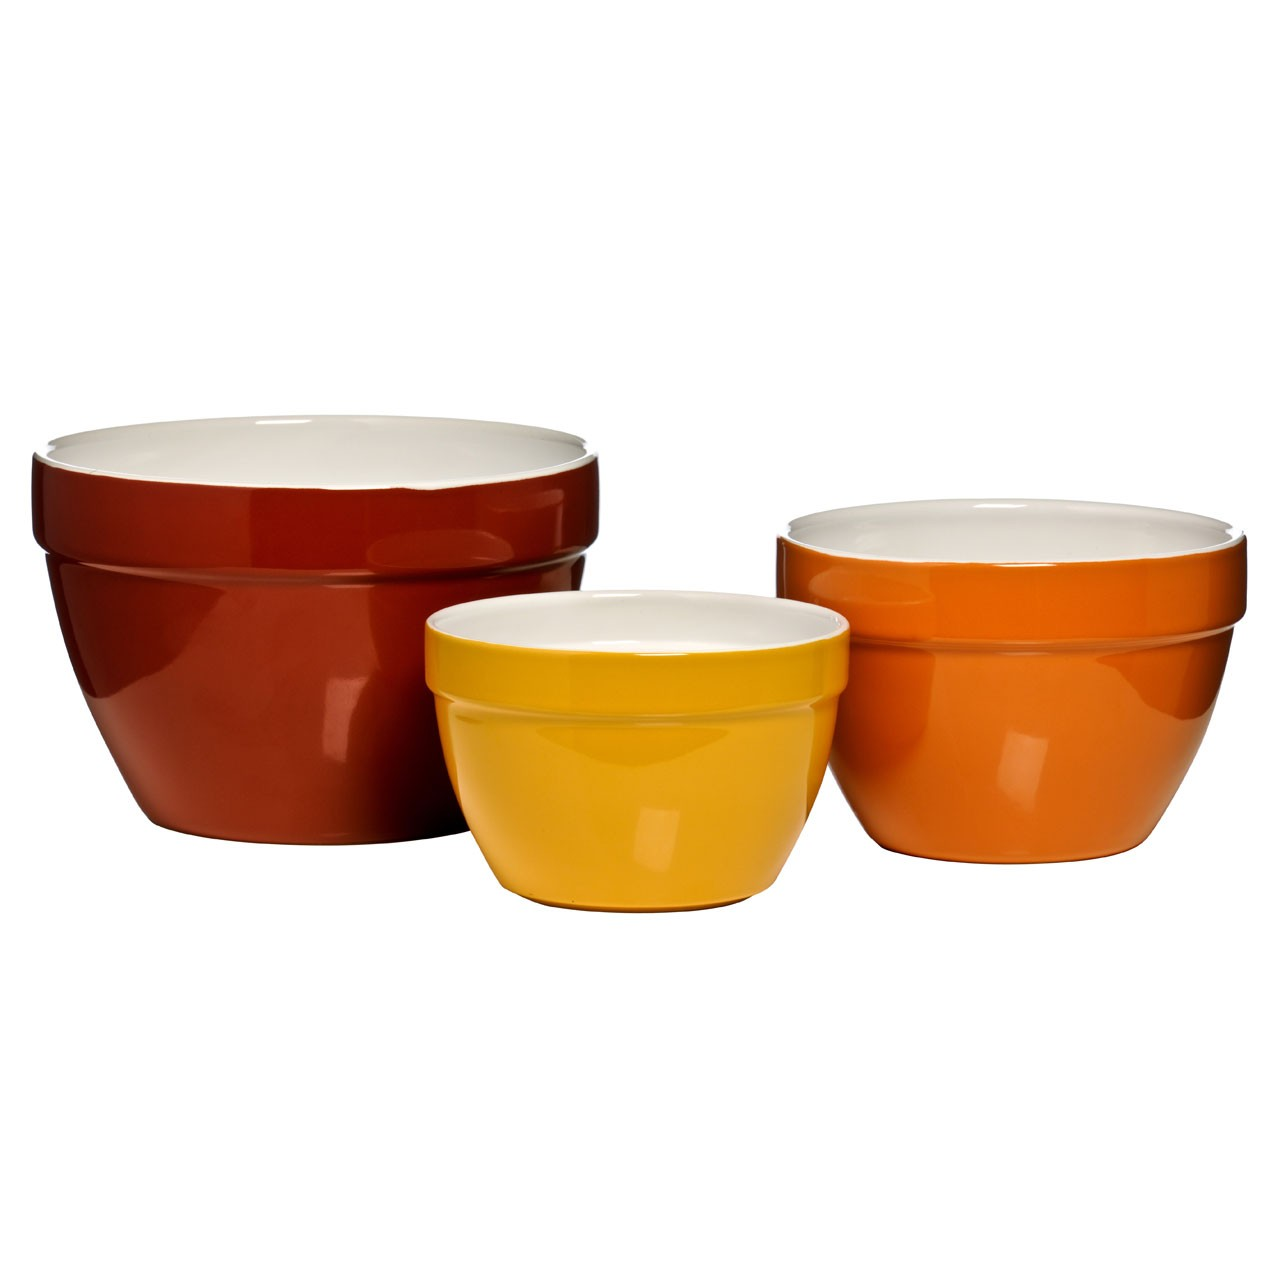 3 Mixing Bowl Set Robust Ceramic Will Complement Most Kitchen's